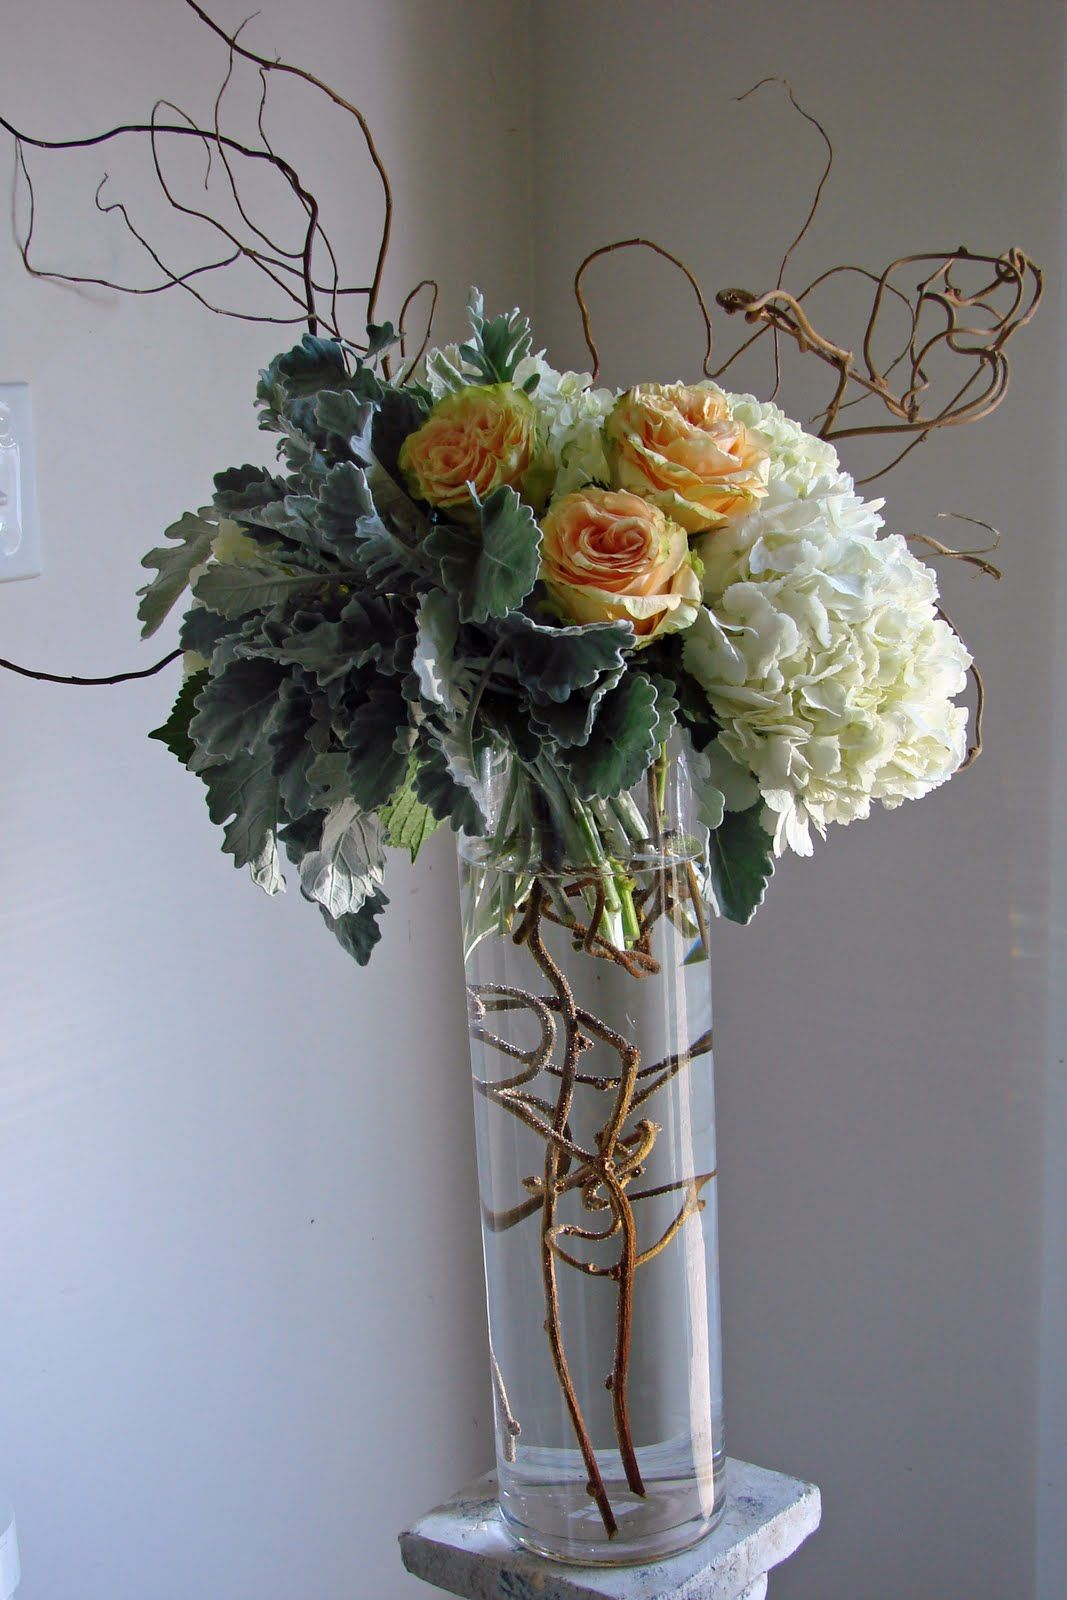 Curly willow branch and rose centerpieces dusty miller kiwi curly willow branch and rose centerpieces dusty miller kiwi vine curly willow hydrangea reviewsmspy